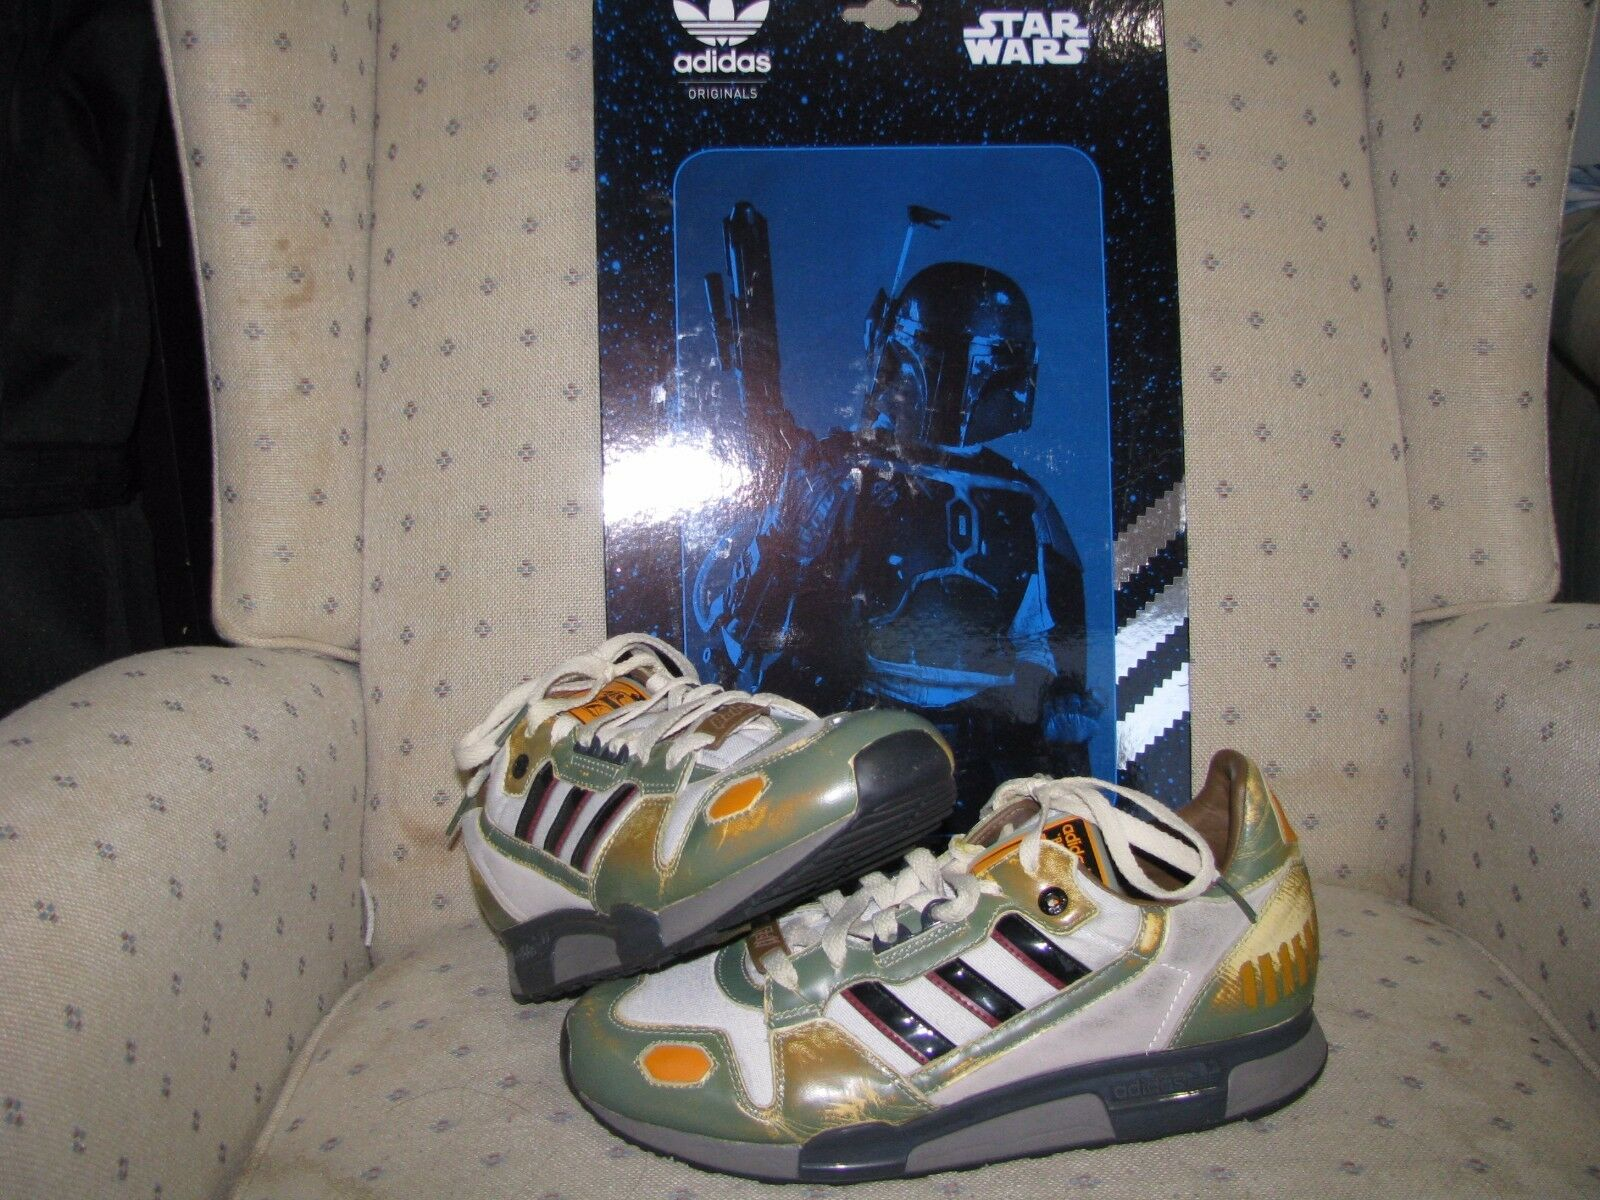 ADIDAS ORIGINALS STAR WARS BOBA FETT ZX800 Han Solo Skywalker Rogue Vader Saber